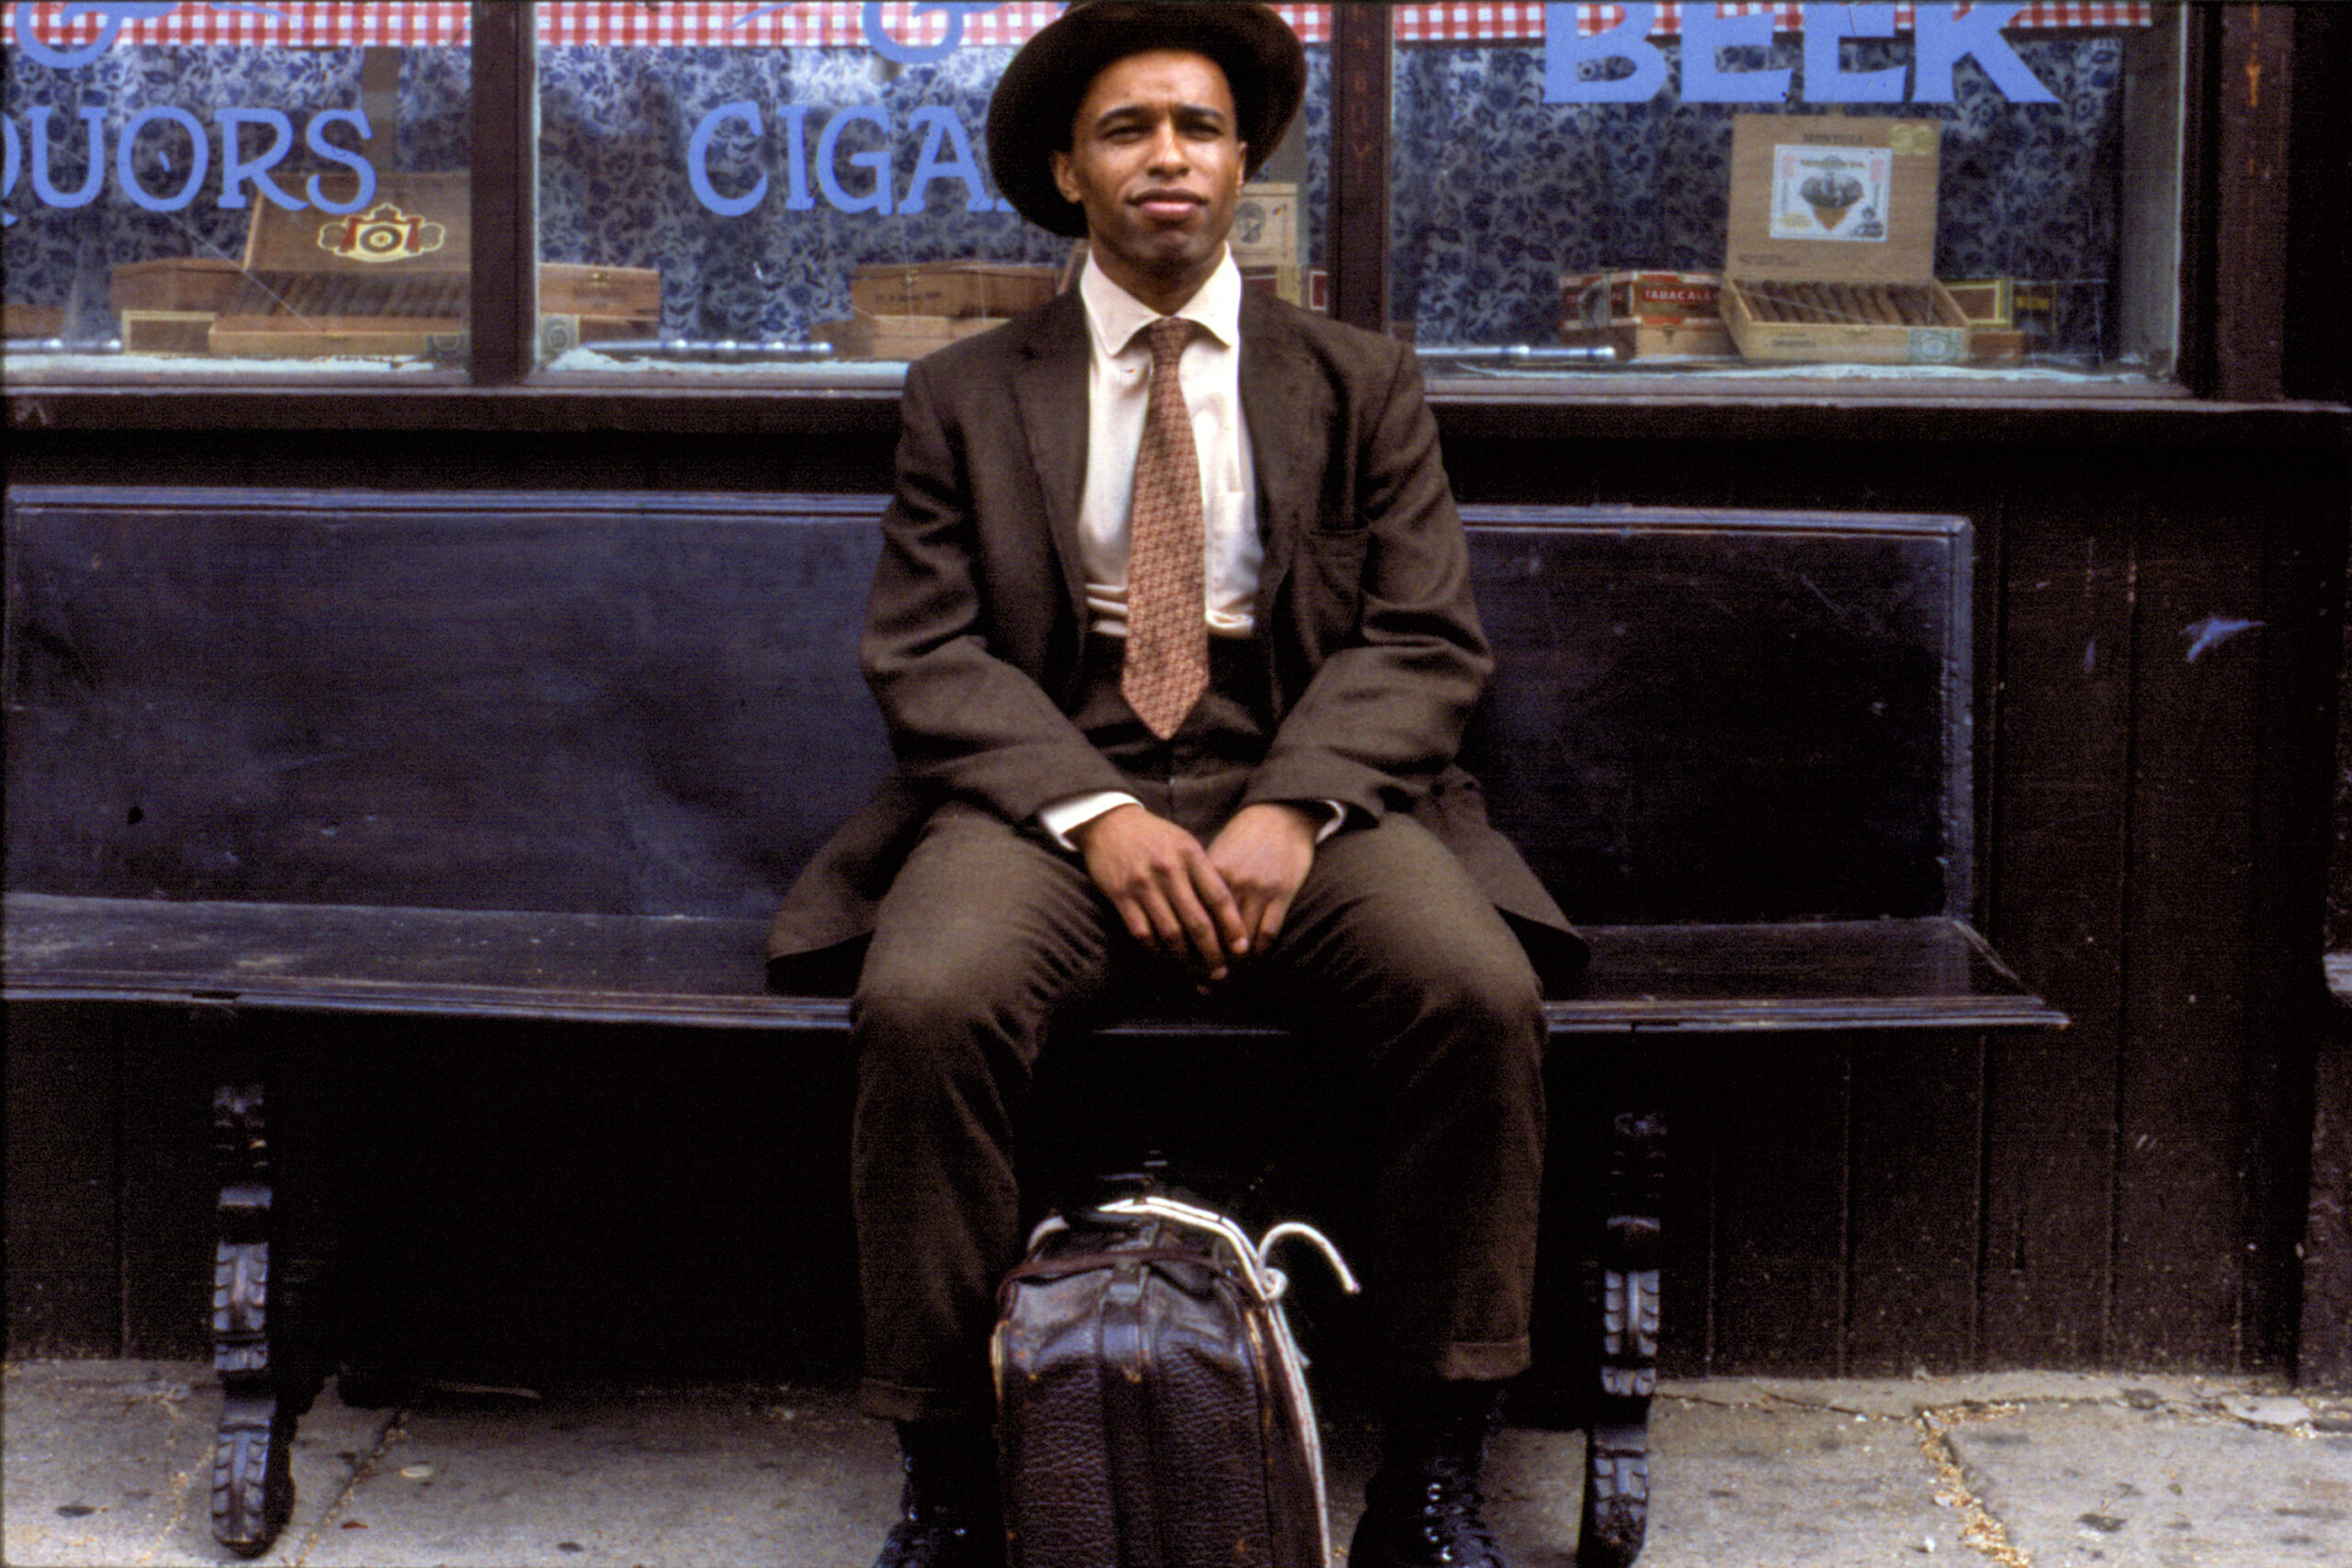 Suited up black man Frank Custer sits on bench